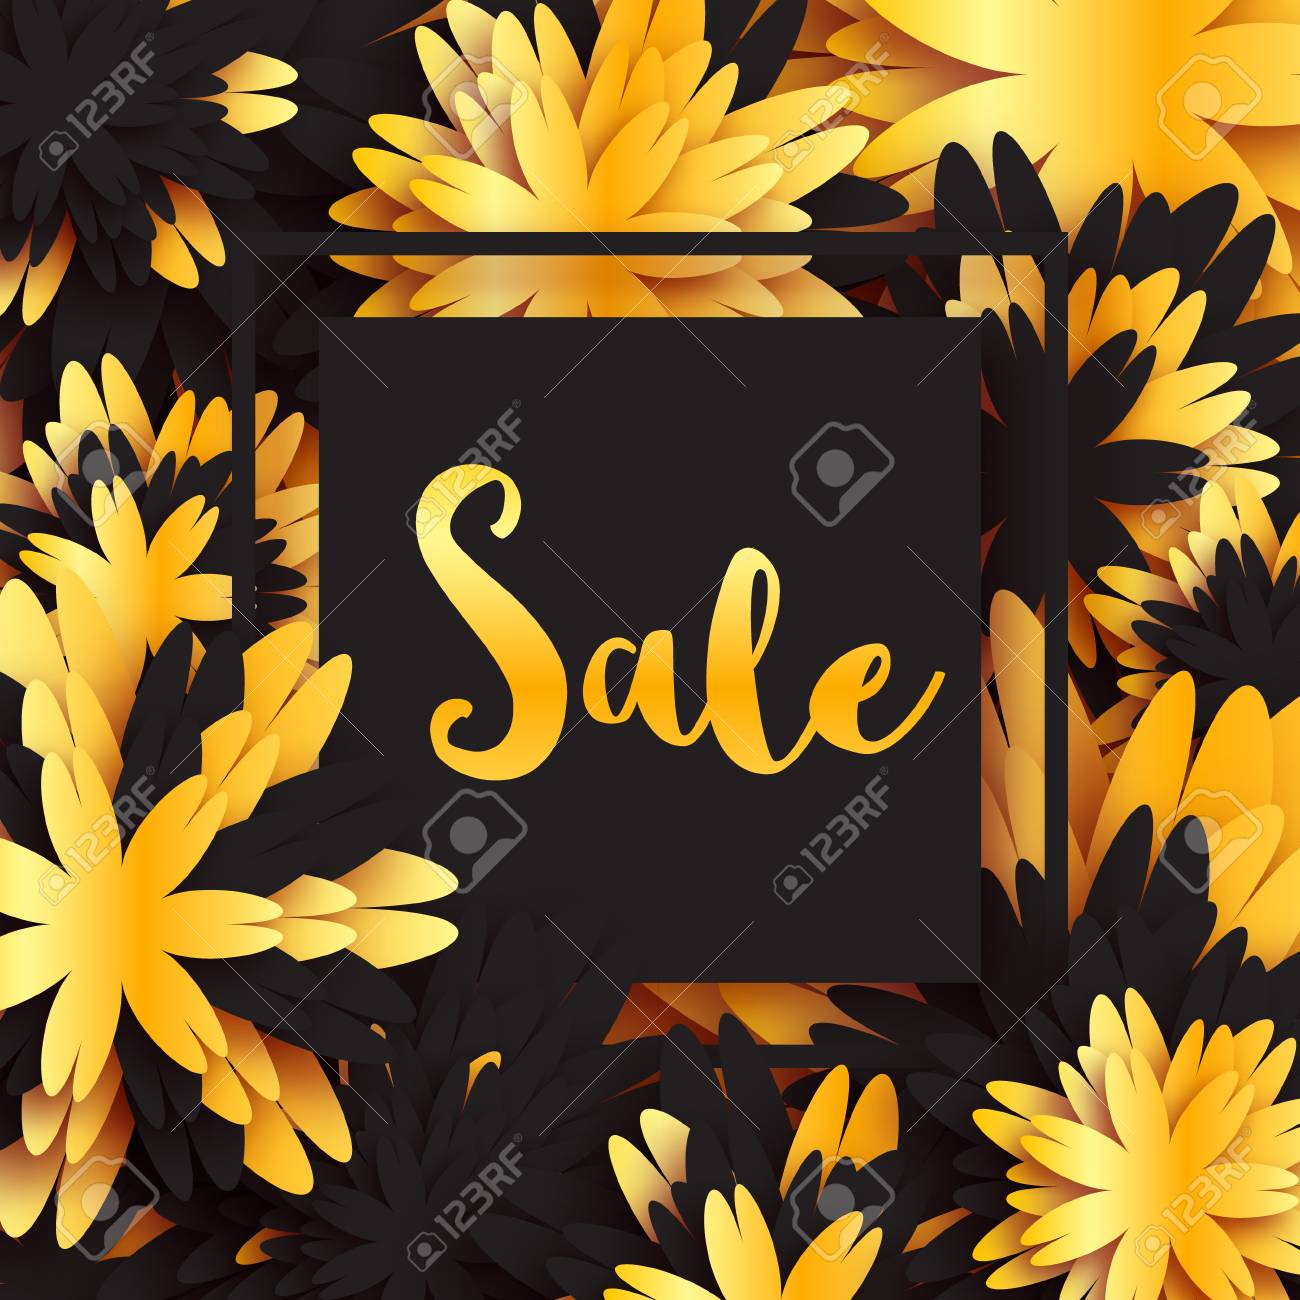 Golden foil spring summer sale banner with frame for business golden foil spring summer sale banner with frame for business applique card with origami flowers mightylinksfo